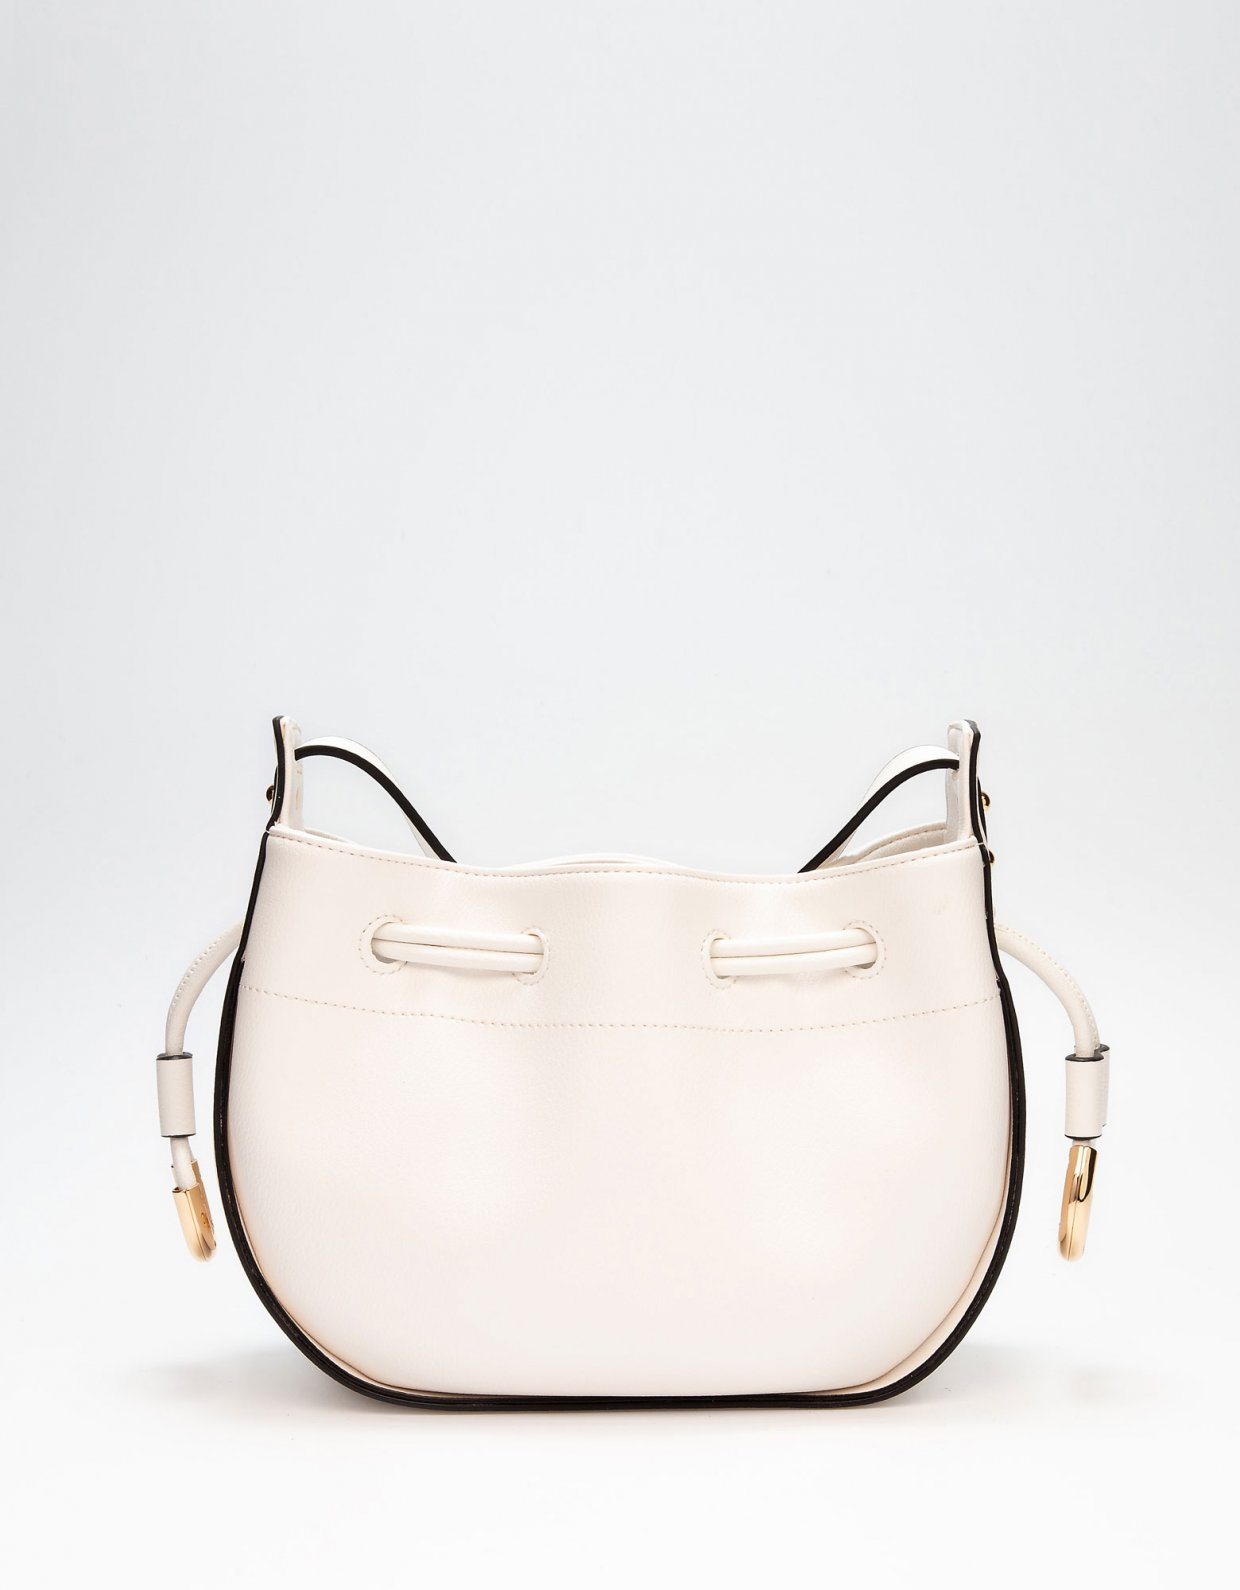 Liu Jo Crossbody bag white